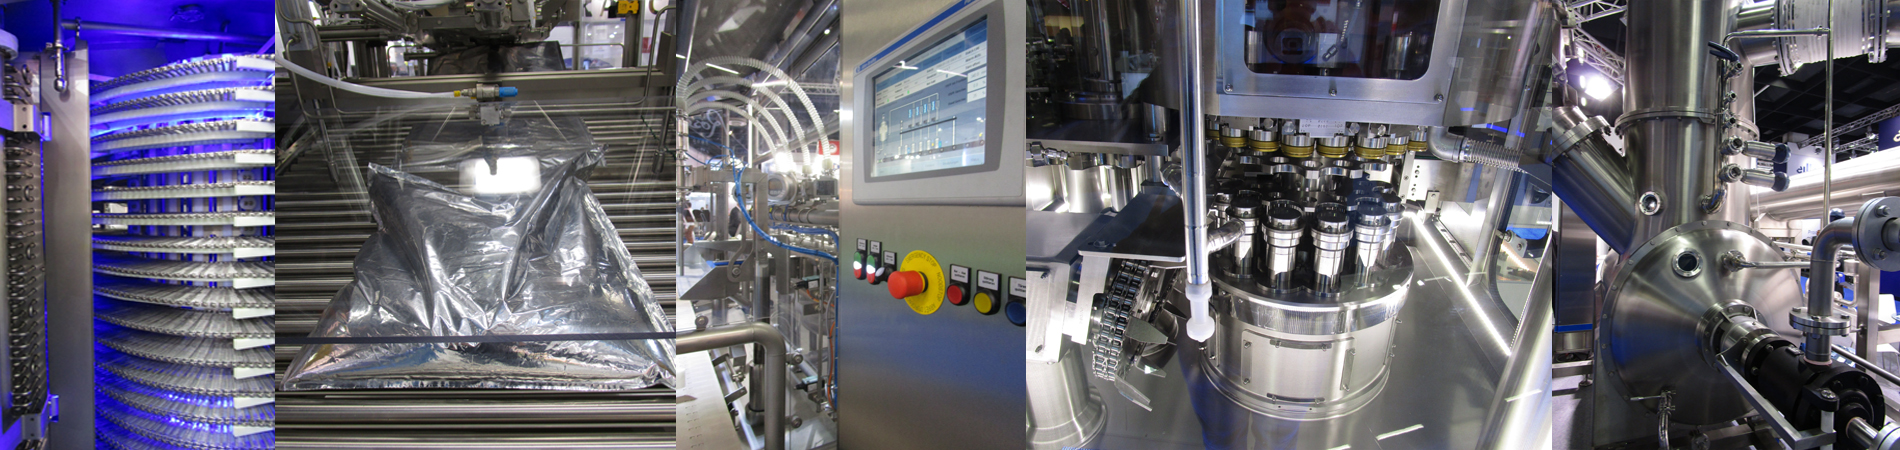 The production of high-quality Stevia sweeteners